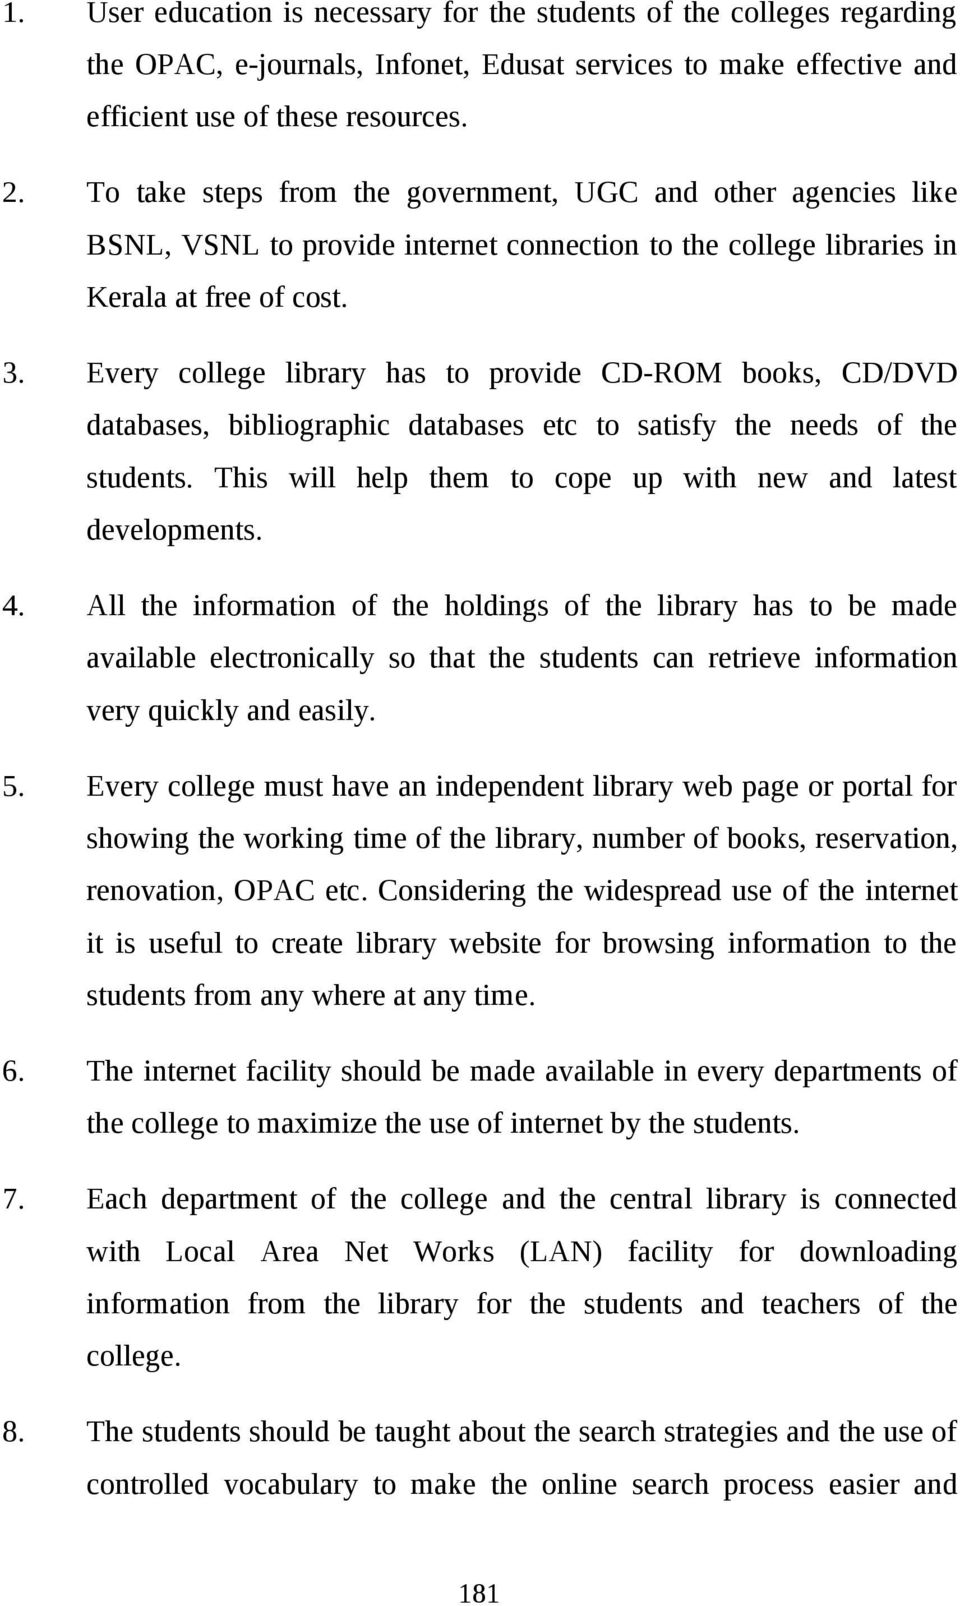 Every college library has to provide CD-ROM books, CD/DVD databases, bibliographic databases etc to satisfy the needs of the students. This will help them to cope up with new and latest developments.